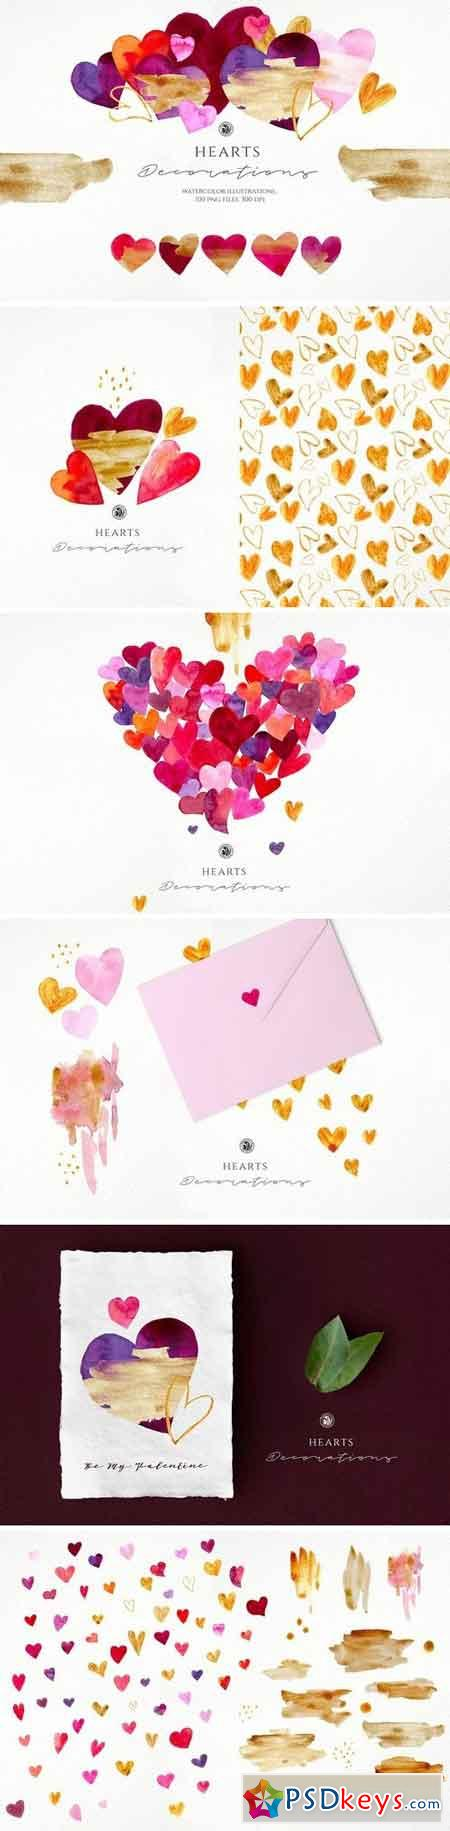 Hearts - watercolor illustrations 3221567